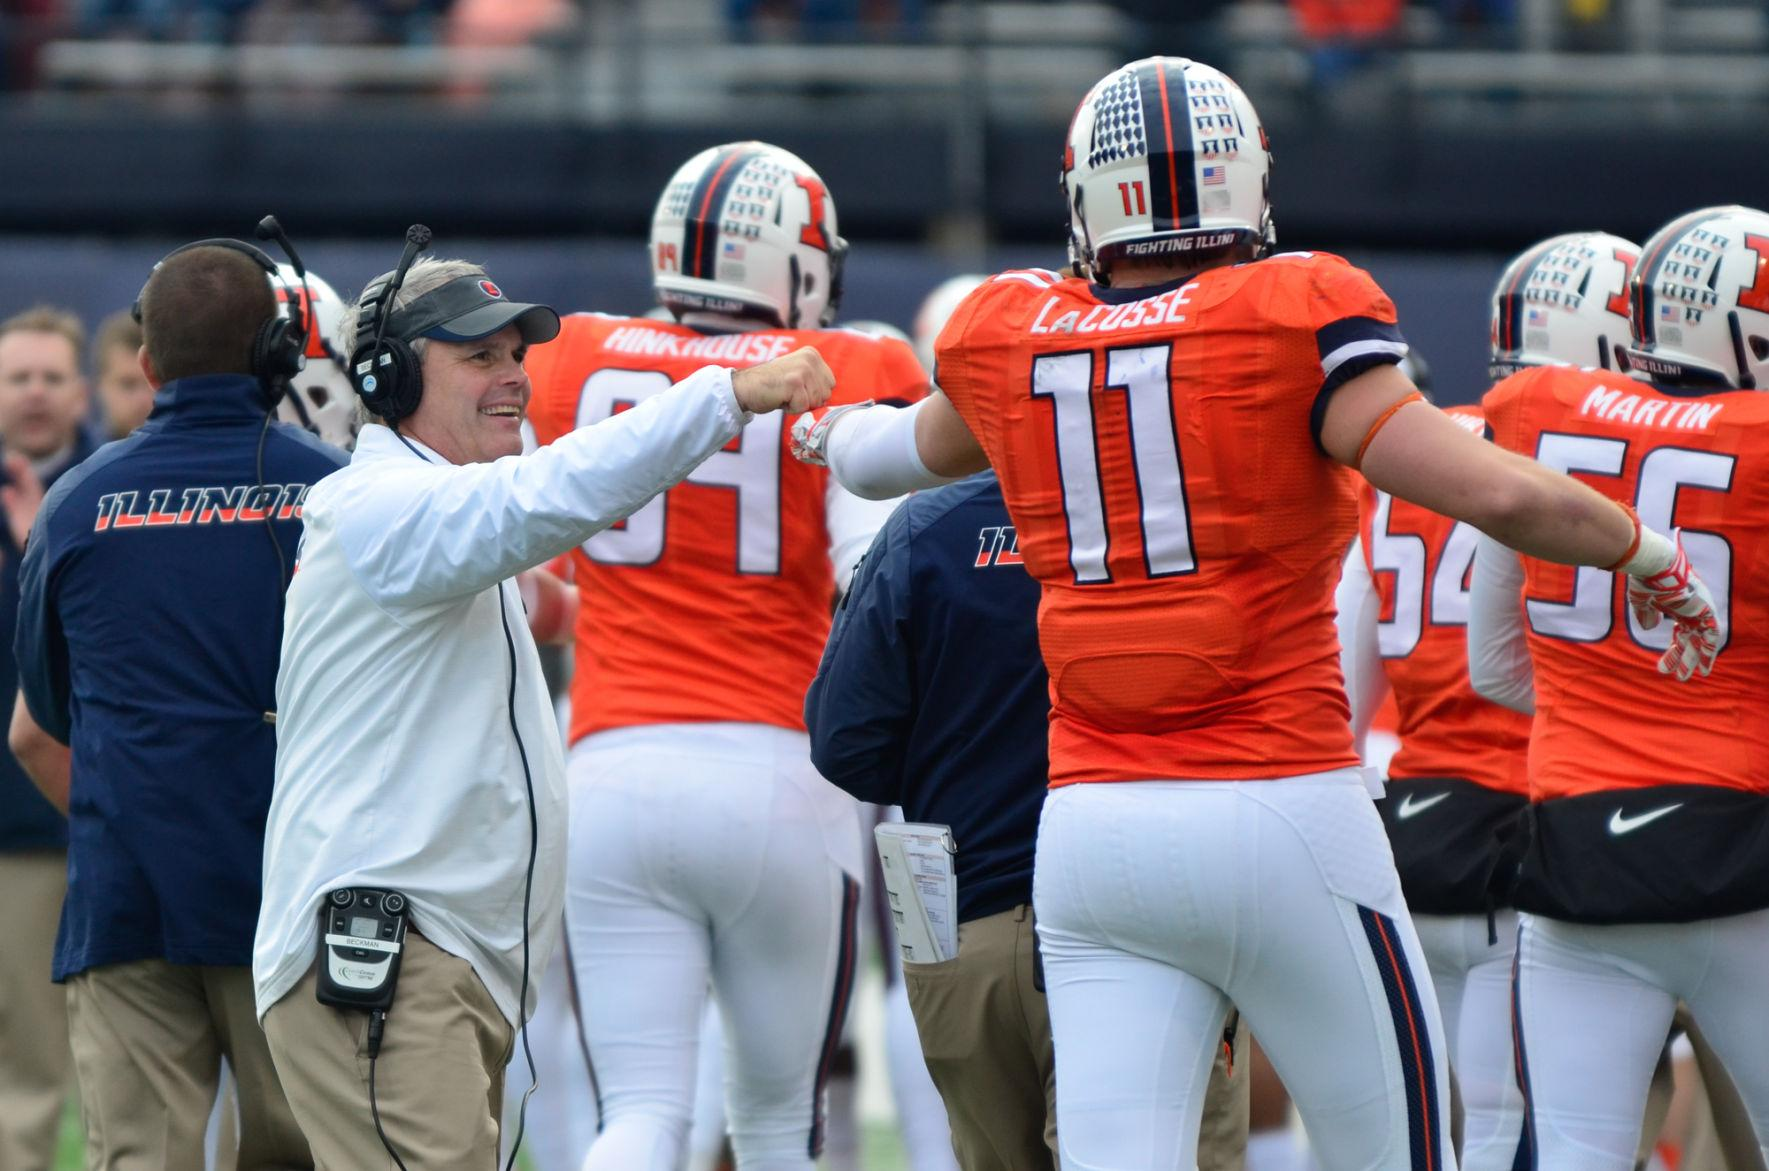 Illinois' head coach Tim Beckman congratulates Matt LaCosse (11) after a touchdown during the team's game against Penn State at Memorial Stadium on Nov. 22, 2014. Several former and current players tweeted out support for Beckman on Thursday.